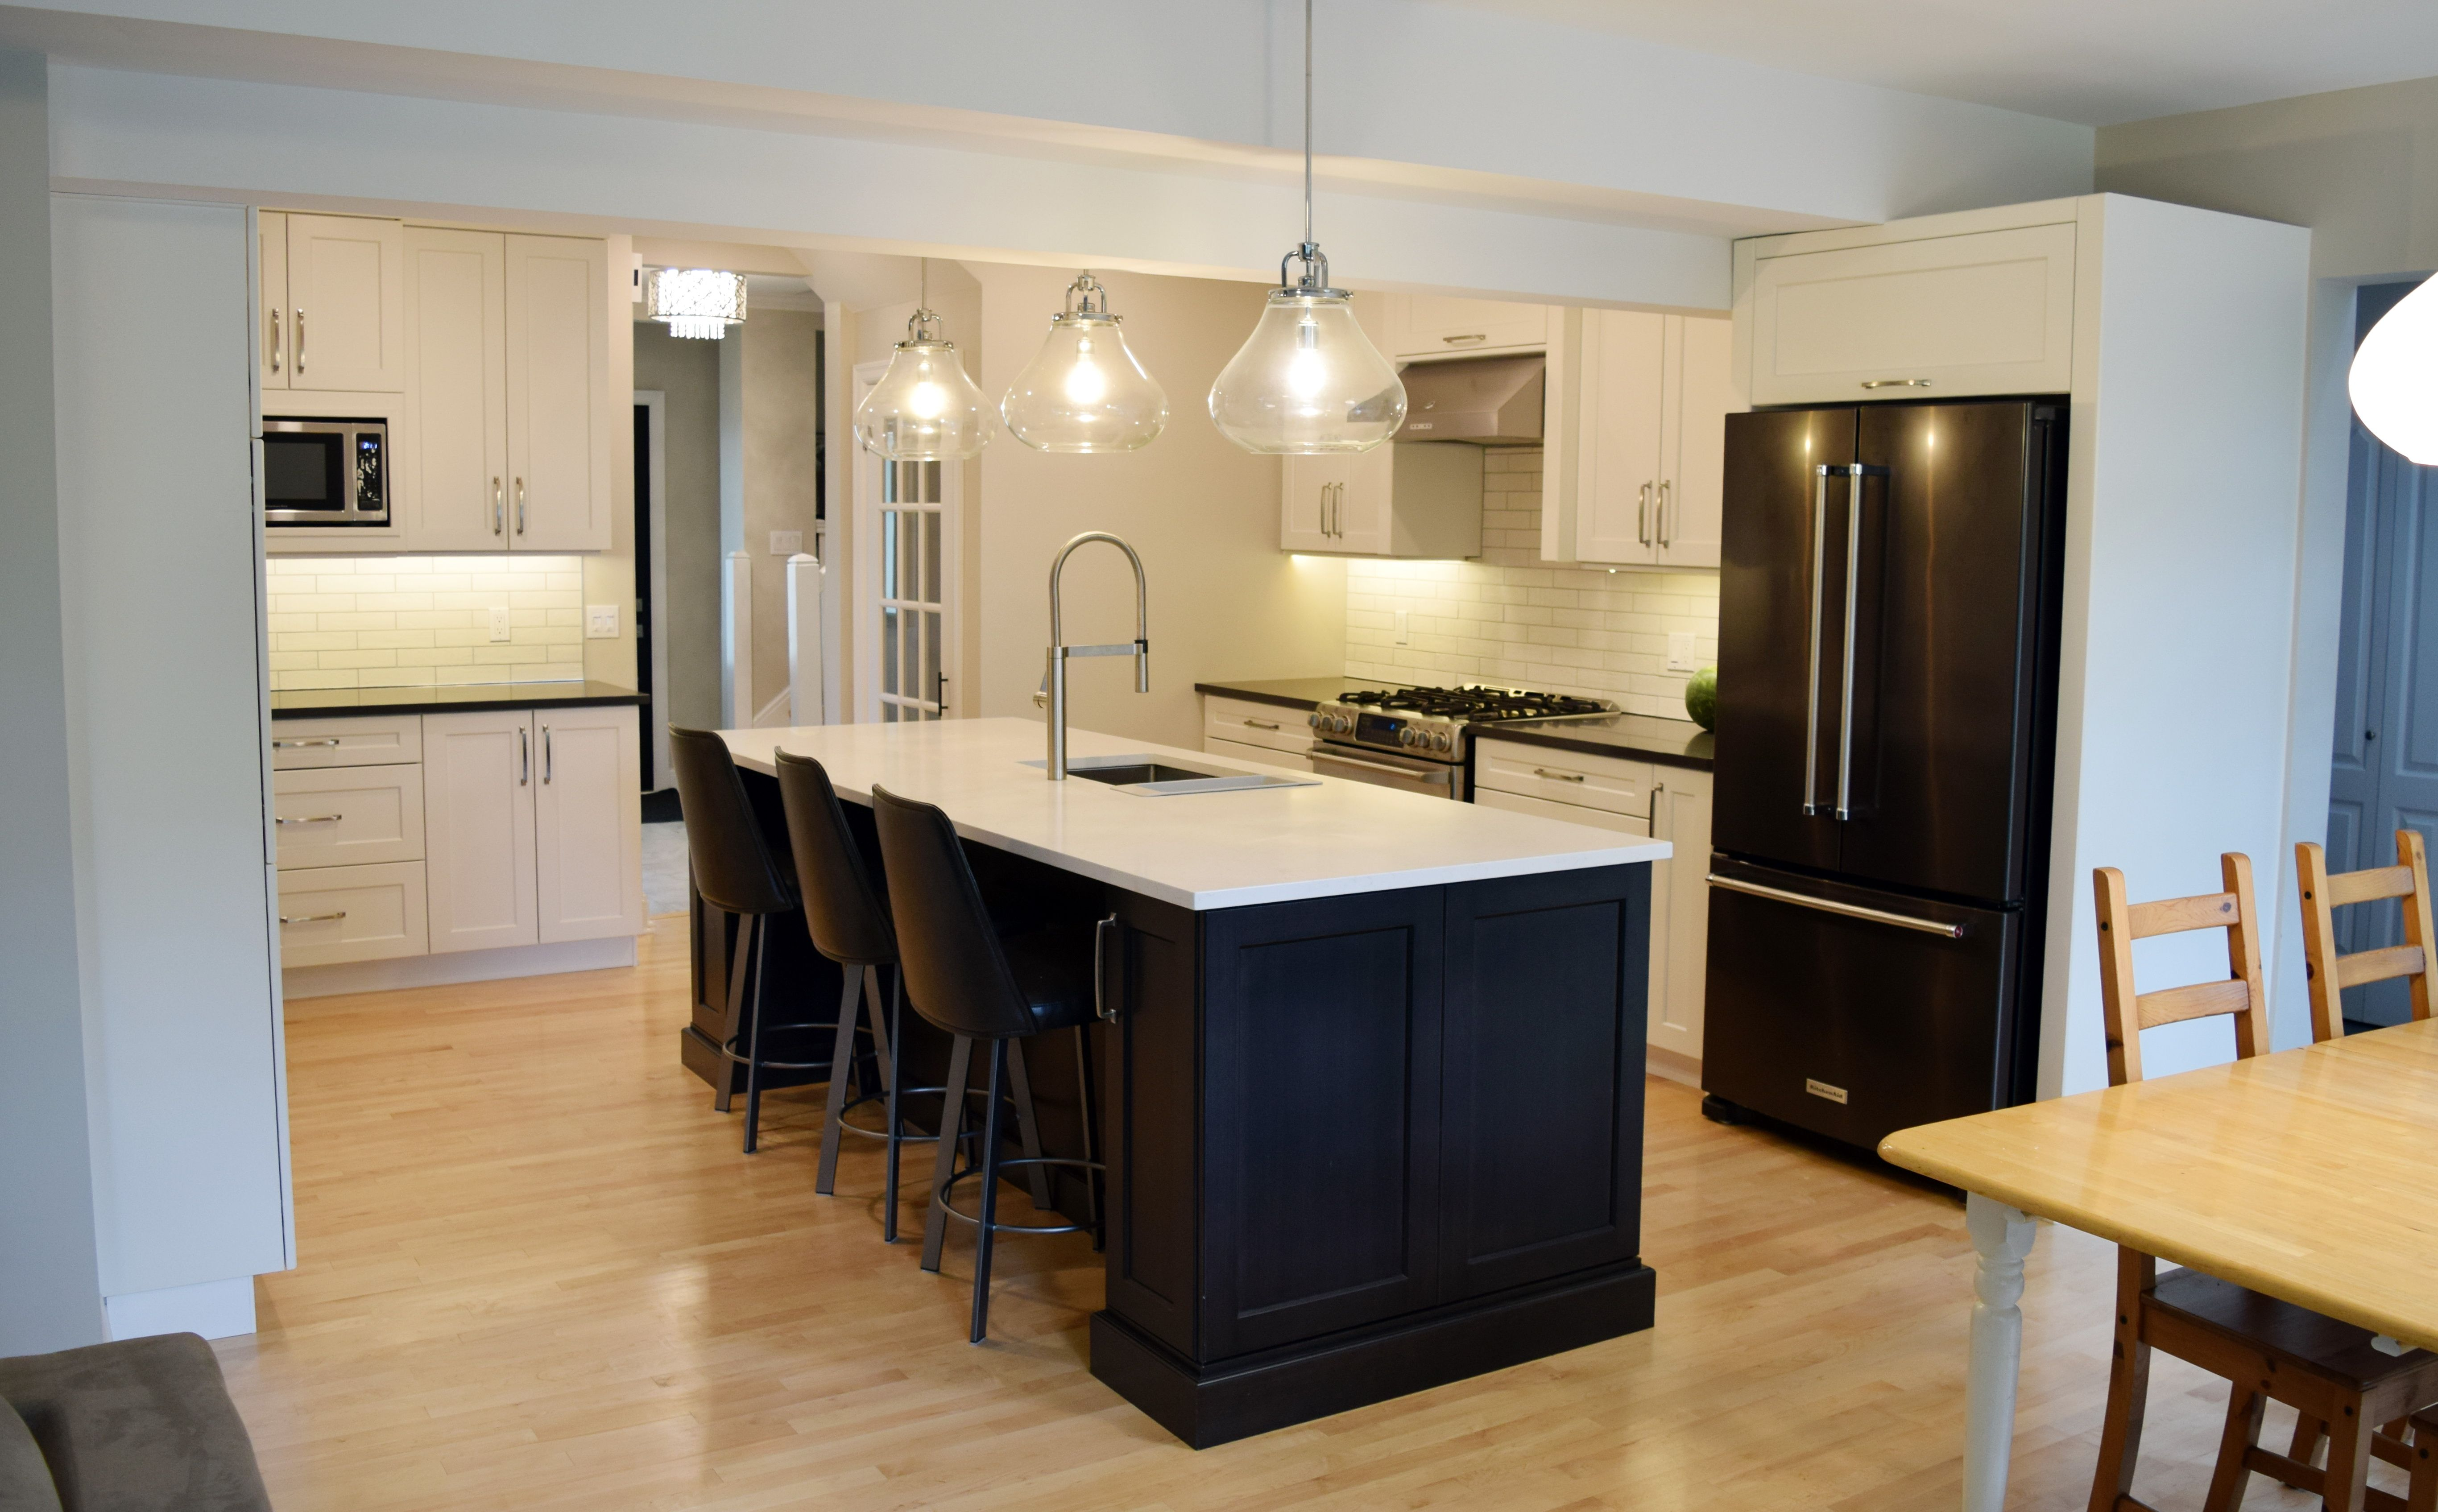 White Shaker Cabinets With Dark Maple Island Kitchen Design Kitchen Cabinet Design White Kitchen Island